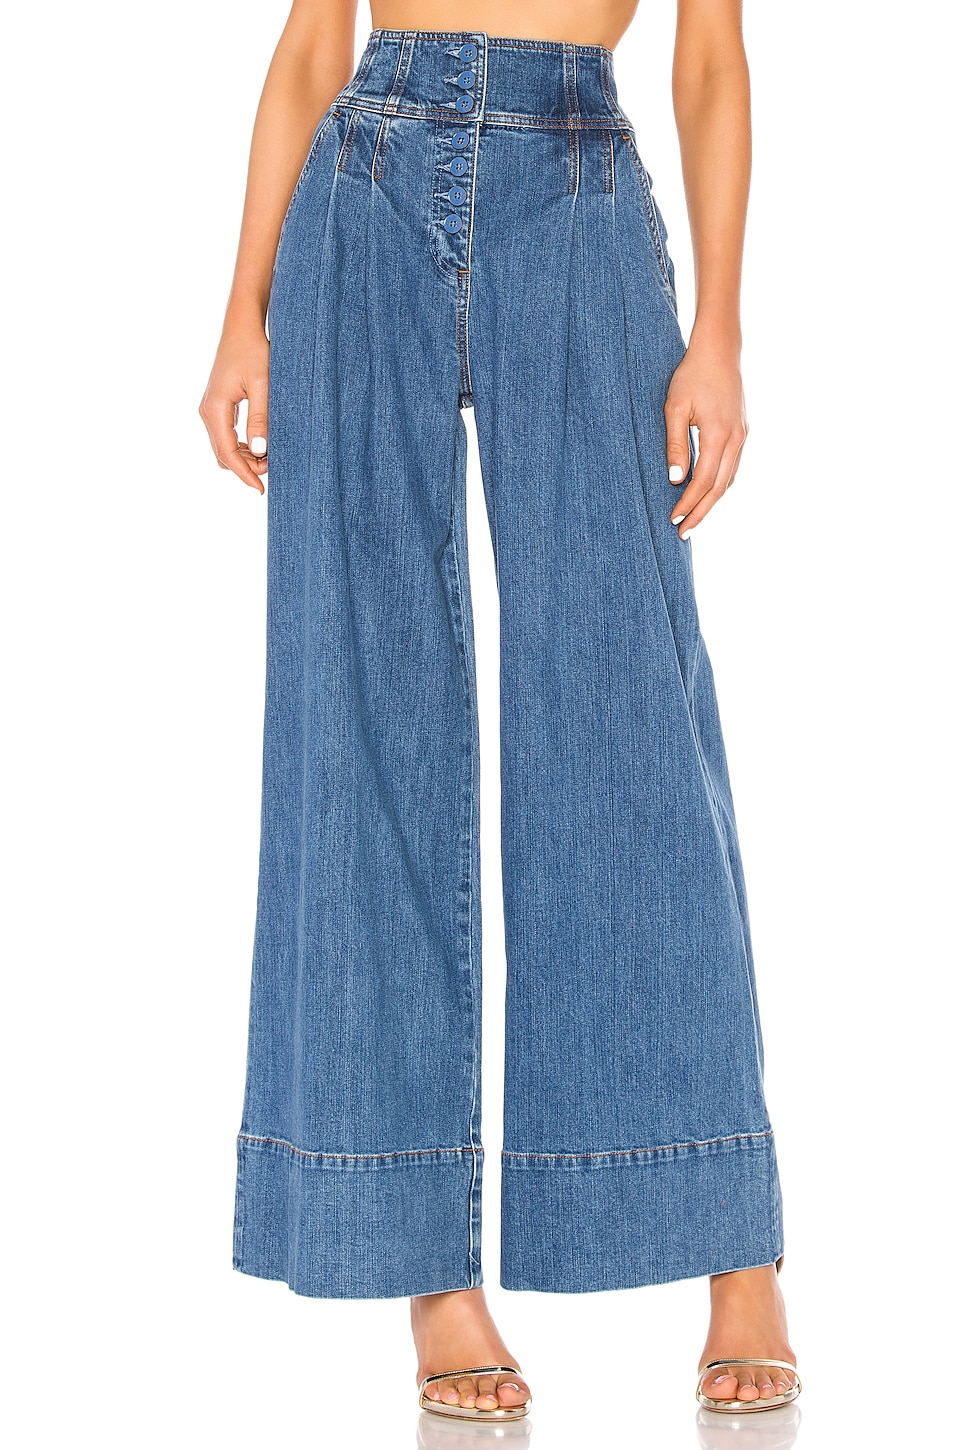 Ulla Johnson Billie Trouser in Mid Wash